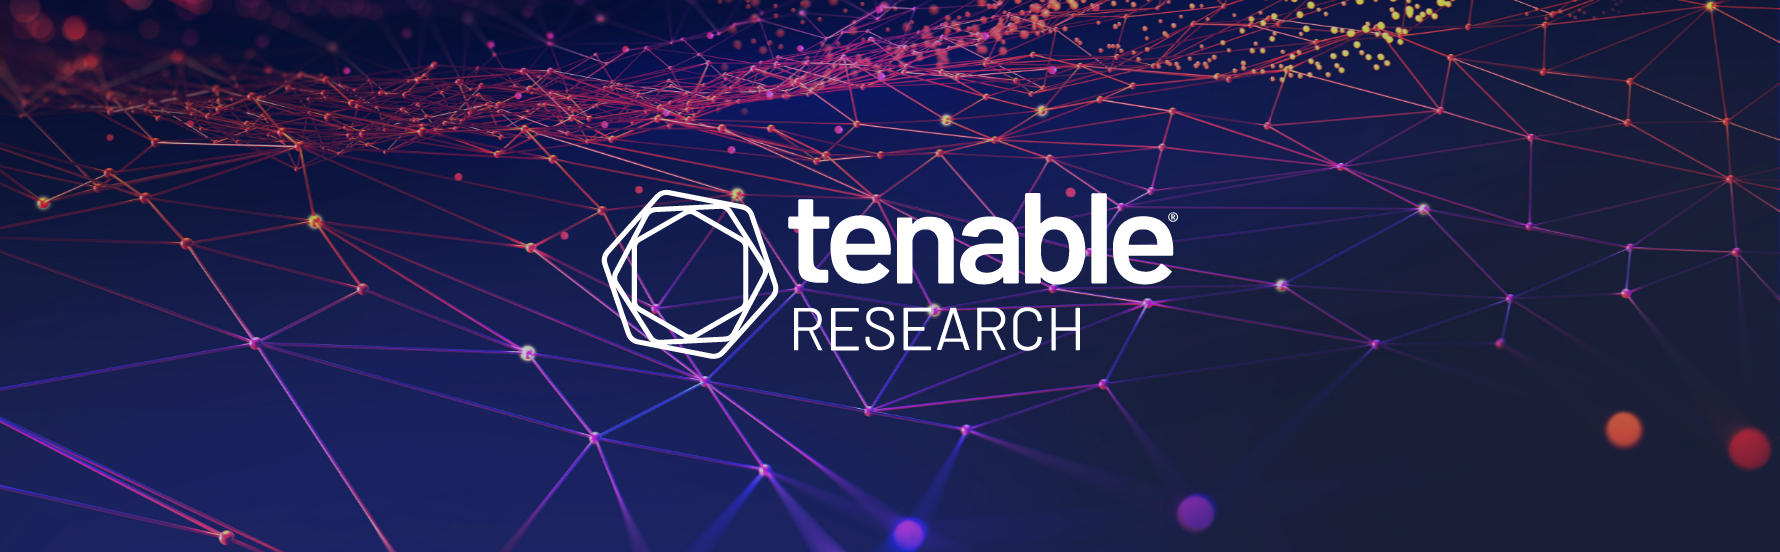 How to Identify Compromised Microsoft Exchange Server Assets Using Tenable